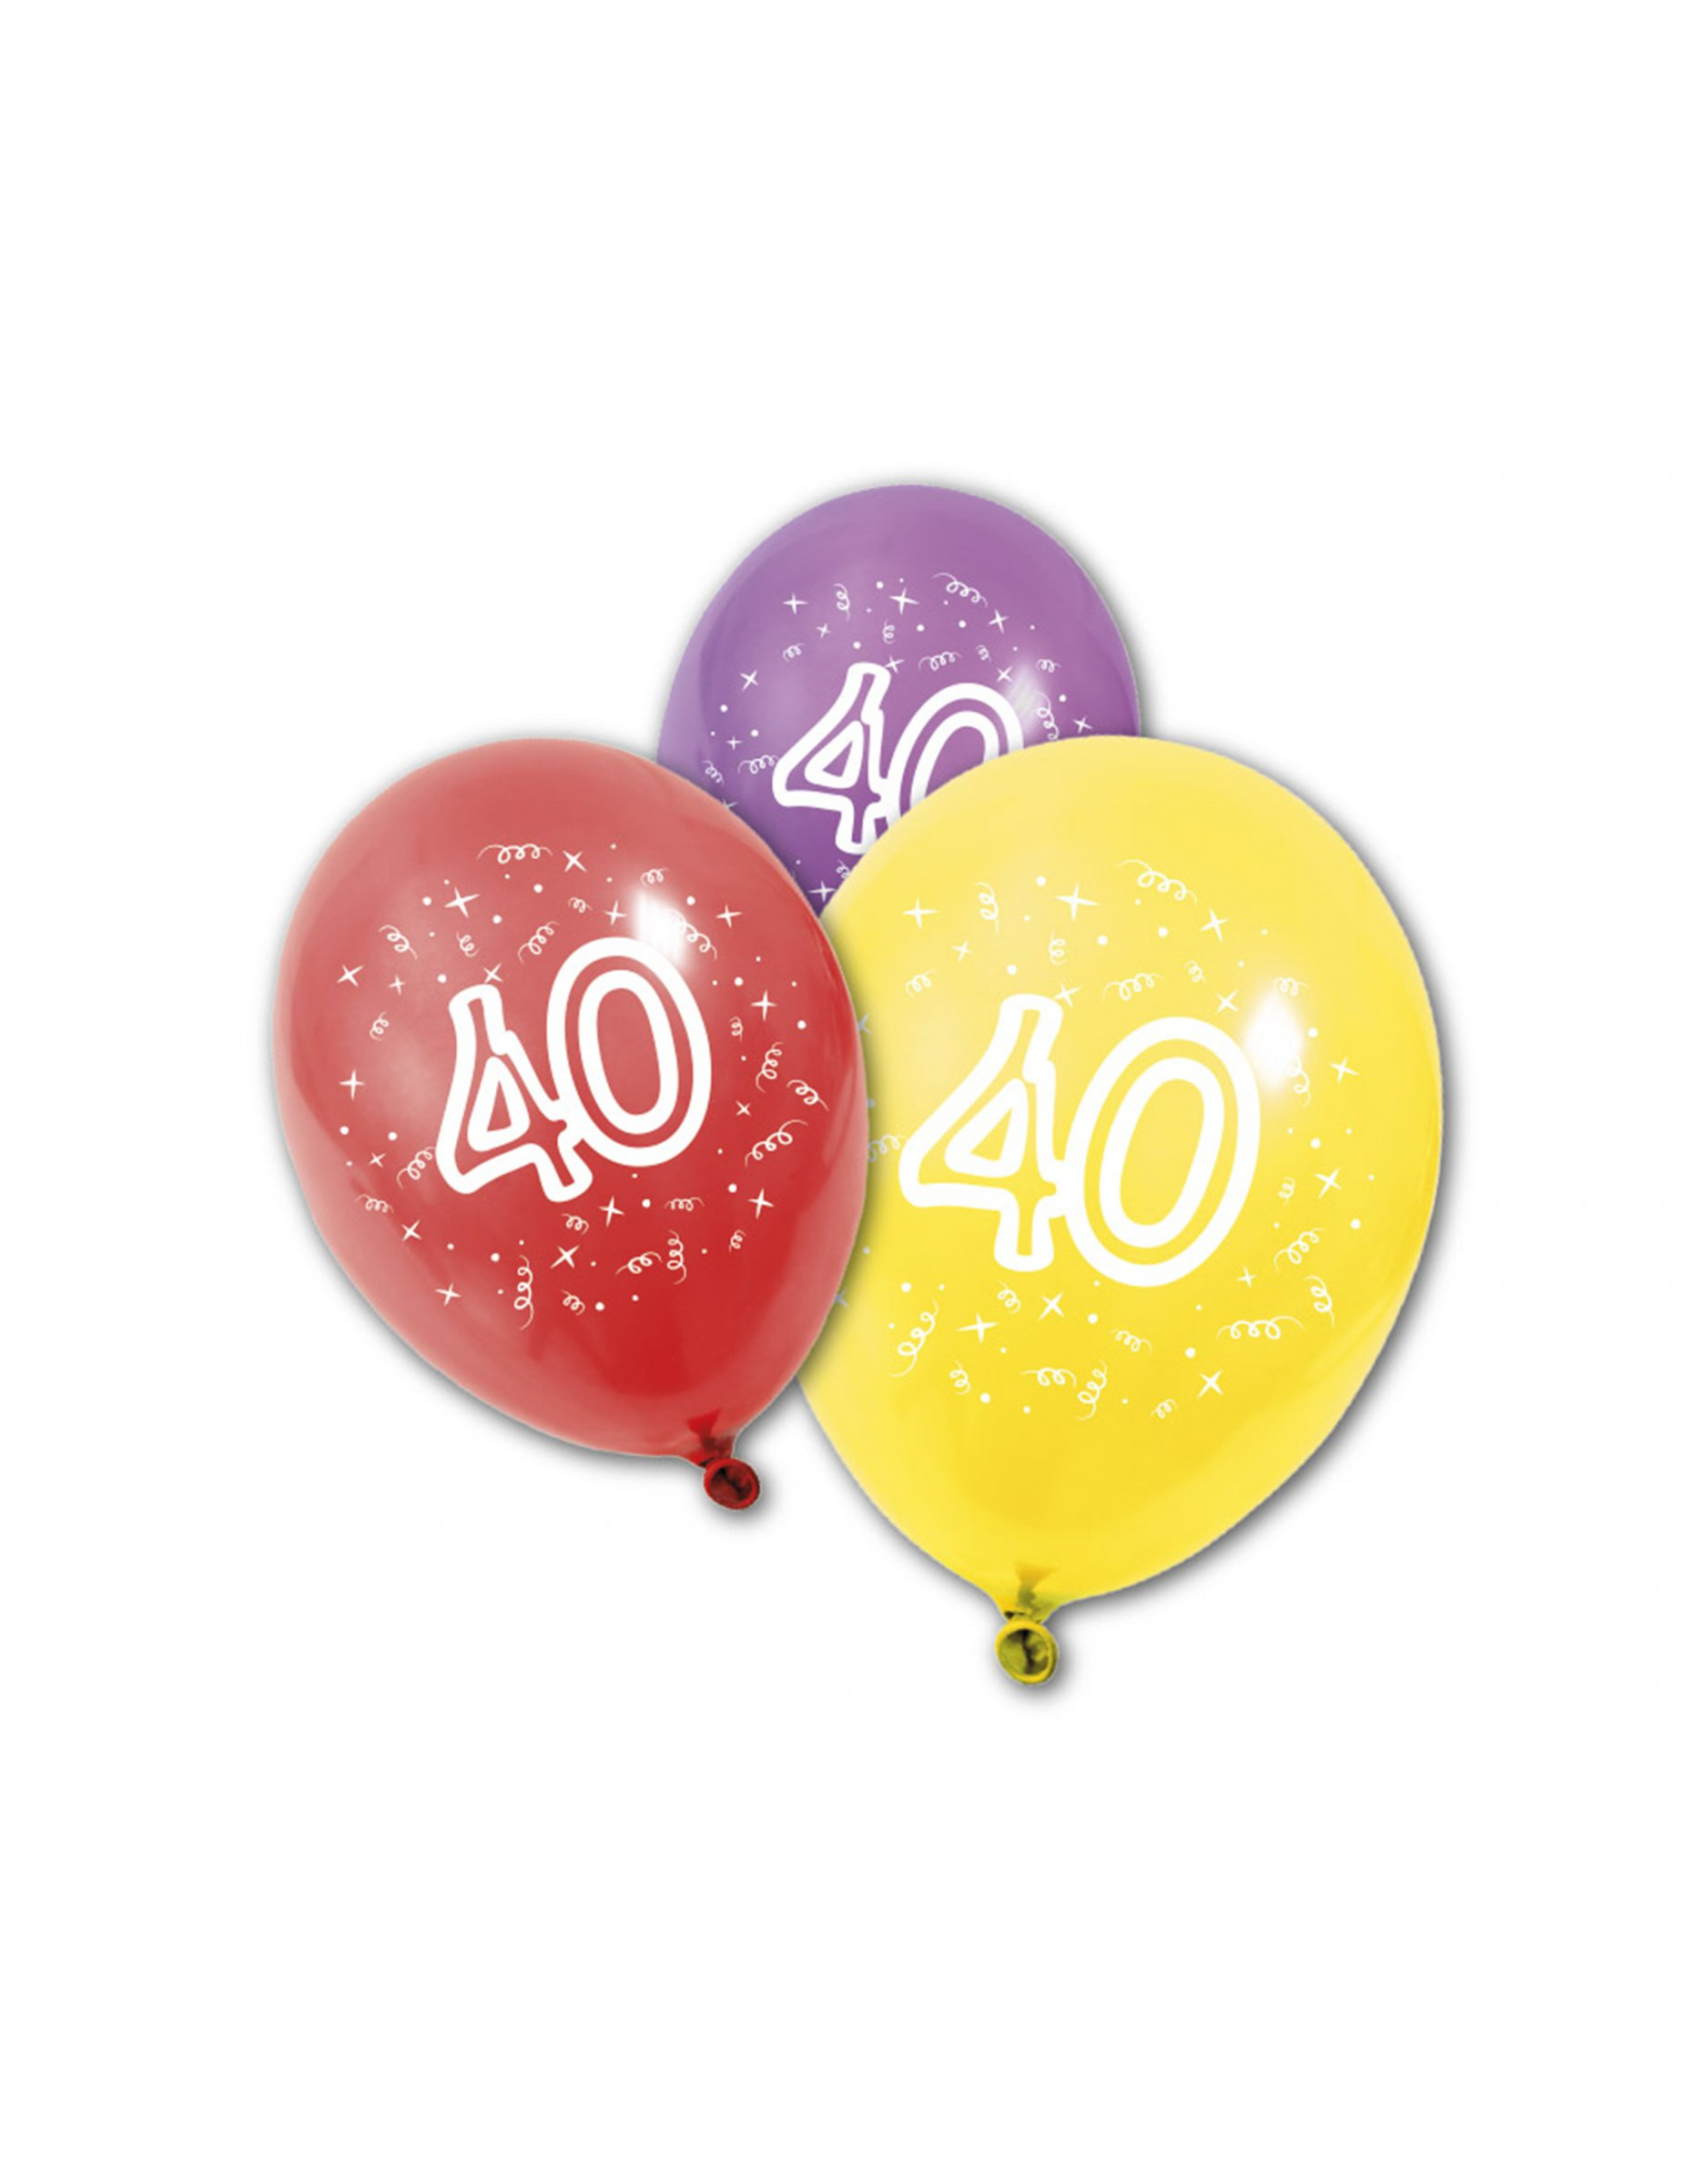 8 ballons en latex anniversaire 40 ans deguise toi achat de decoration animation. Black Bedroom Furniture Sets. Home Design Ideas